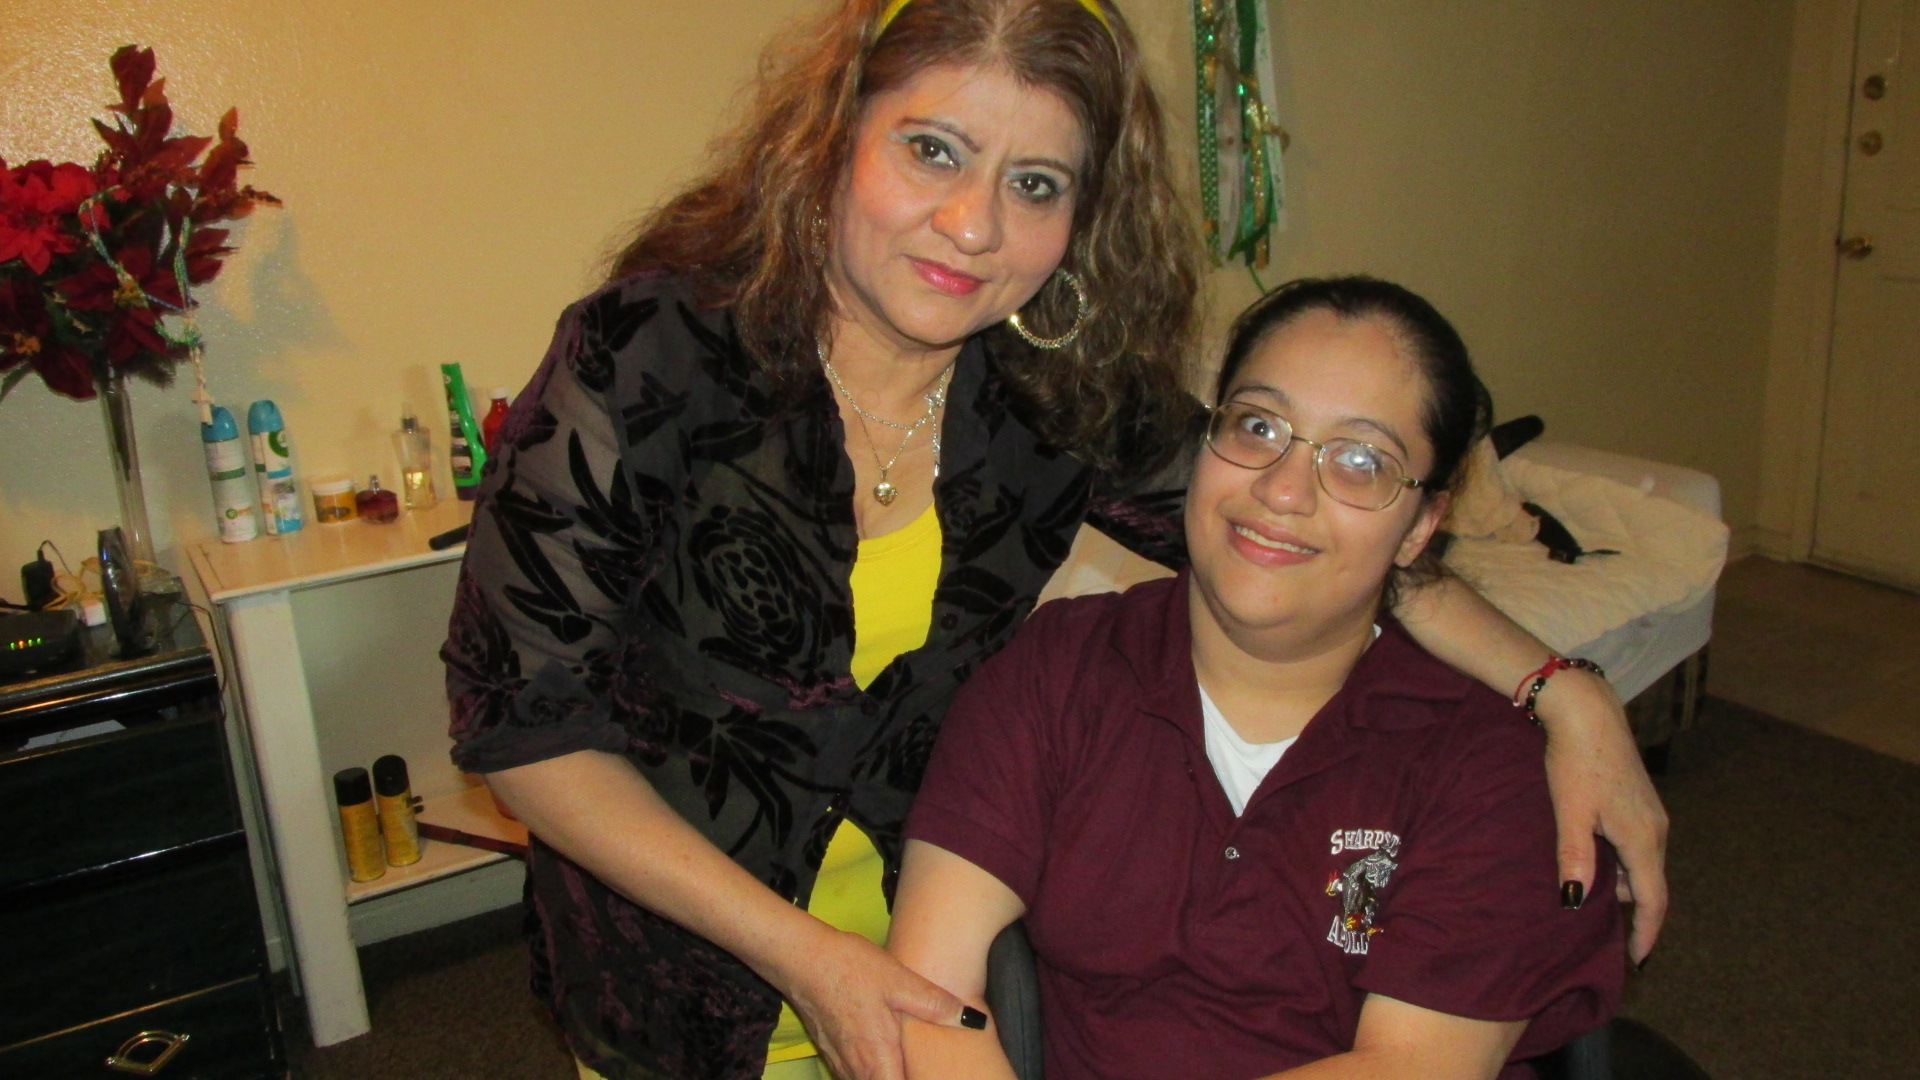 Rosa Aguirre stands with her daughter Lupita, a freshman in high school